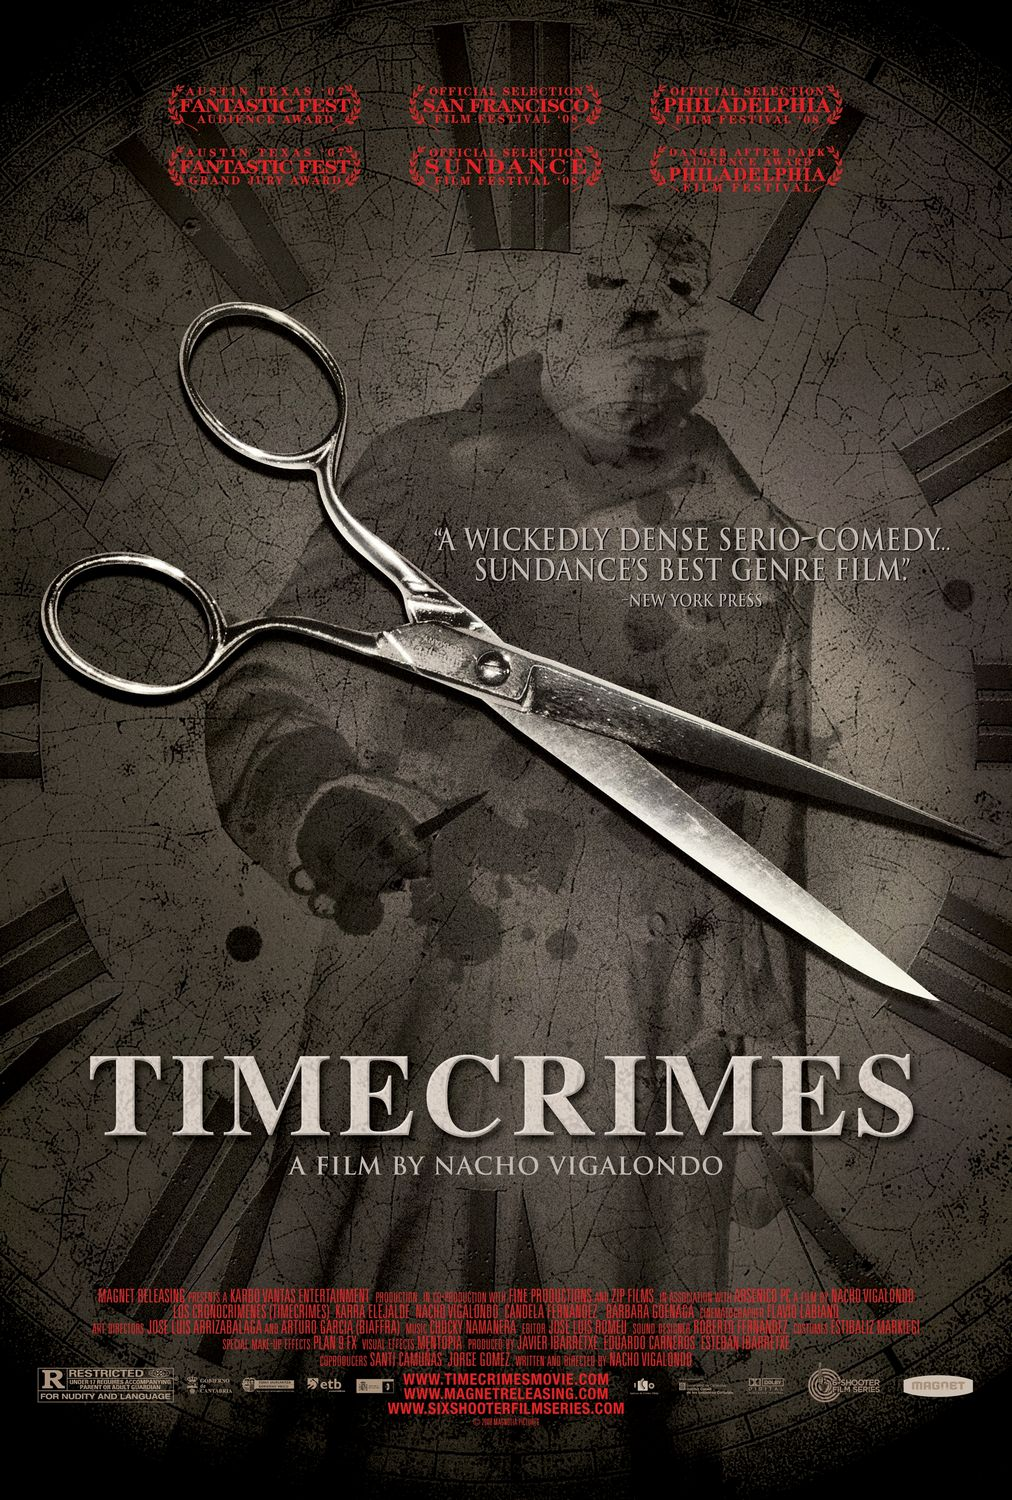 Time Crimes aka Timecrimes